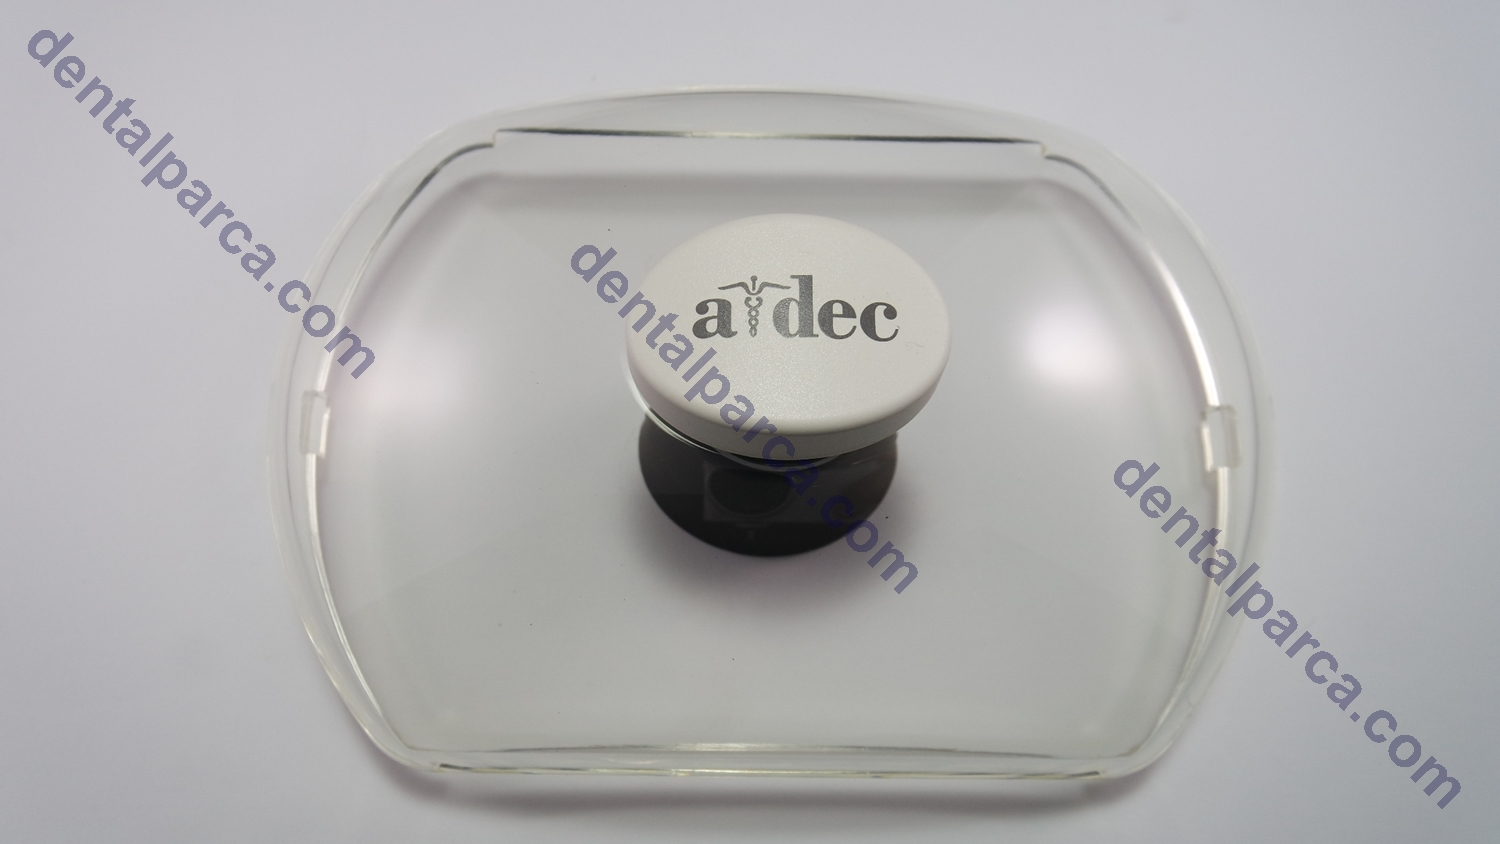 COVER,LIGHT,FOR ADEC 200 (97.0411.00)             resmi